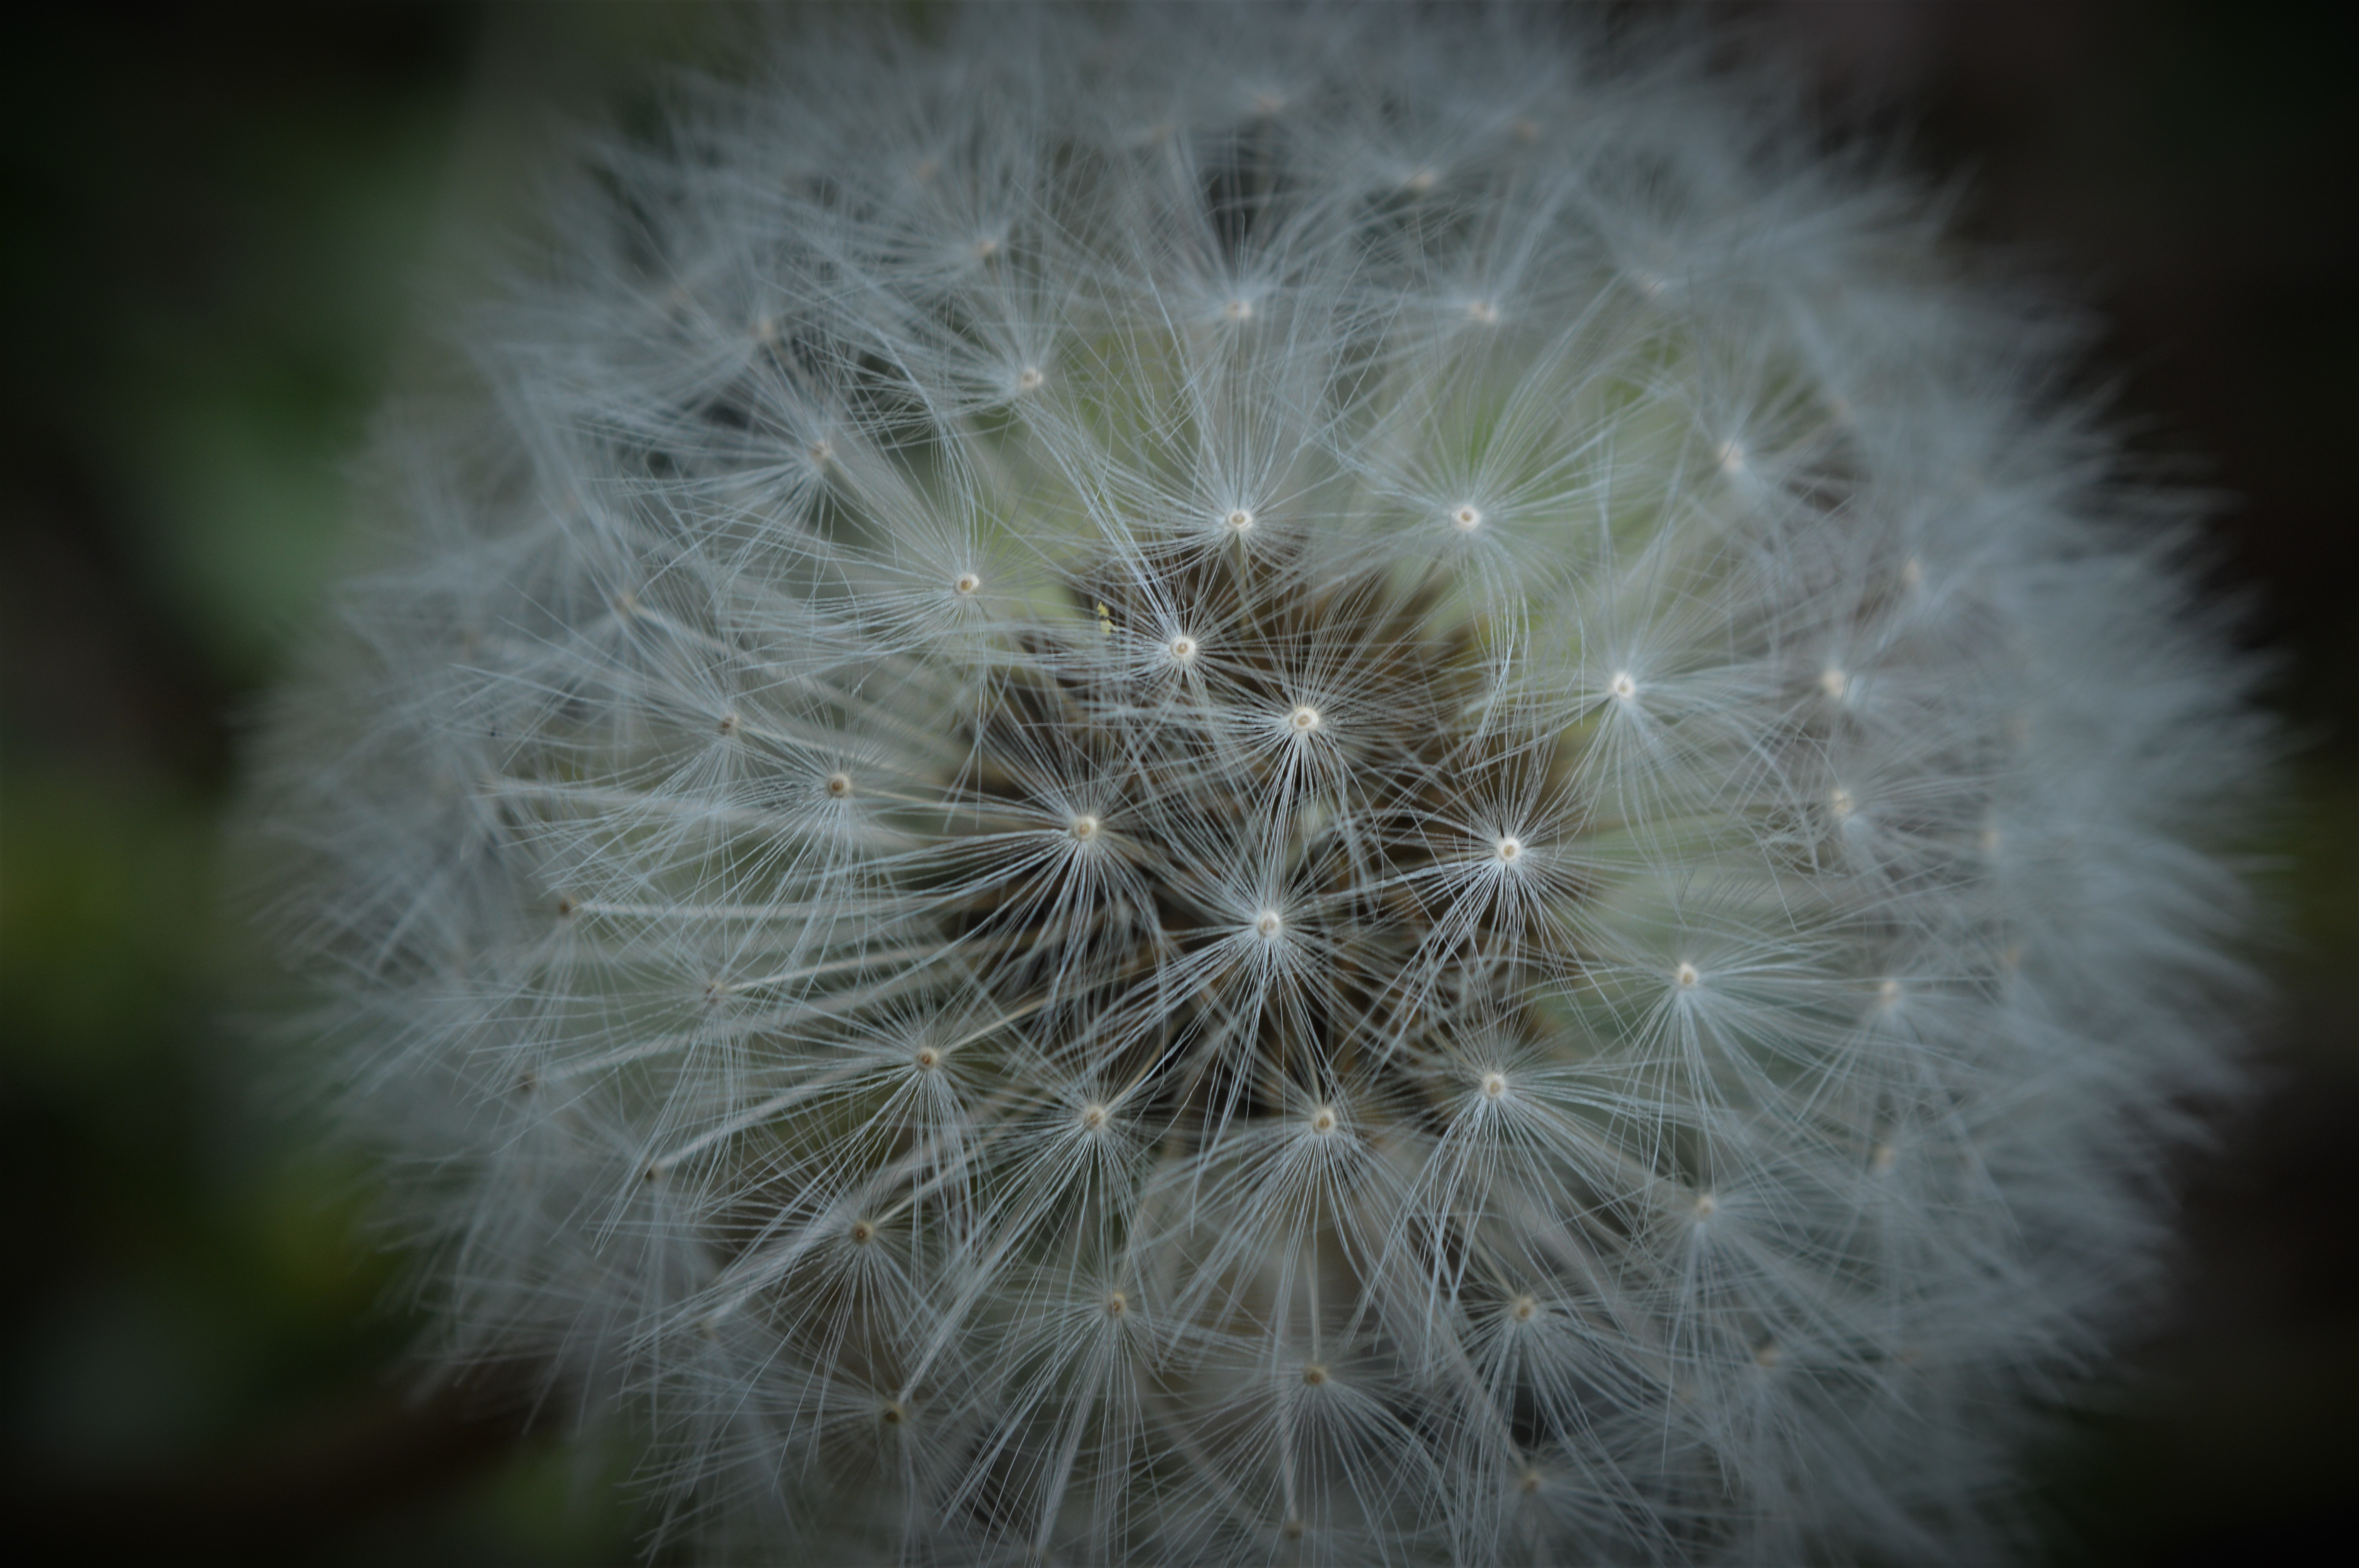 And a Dandelion II